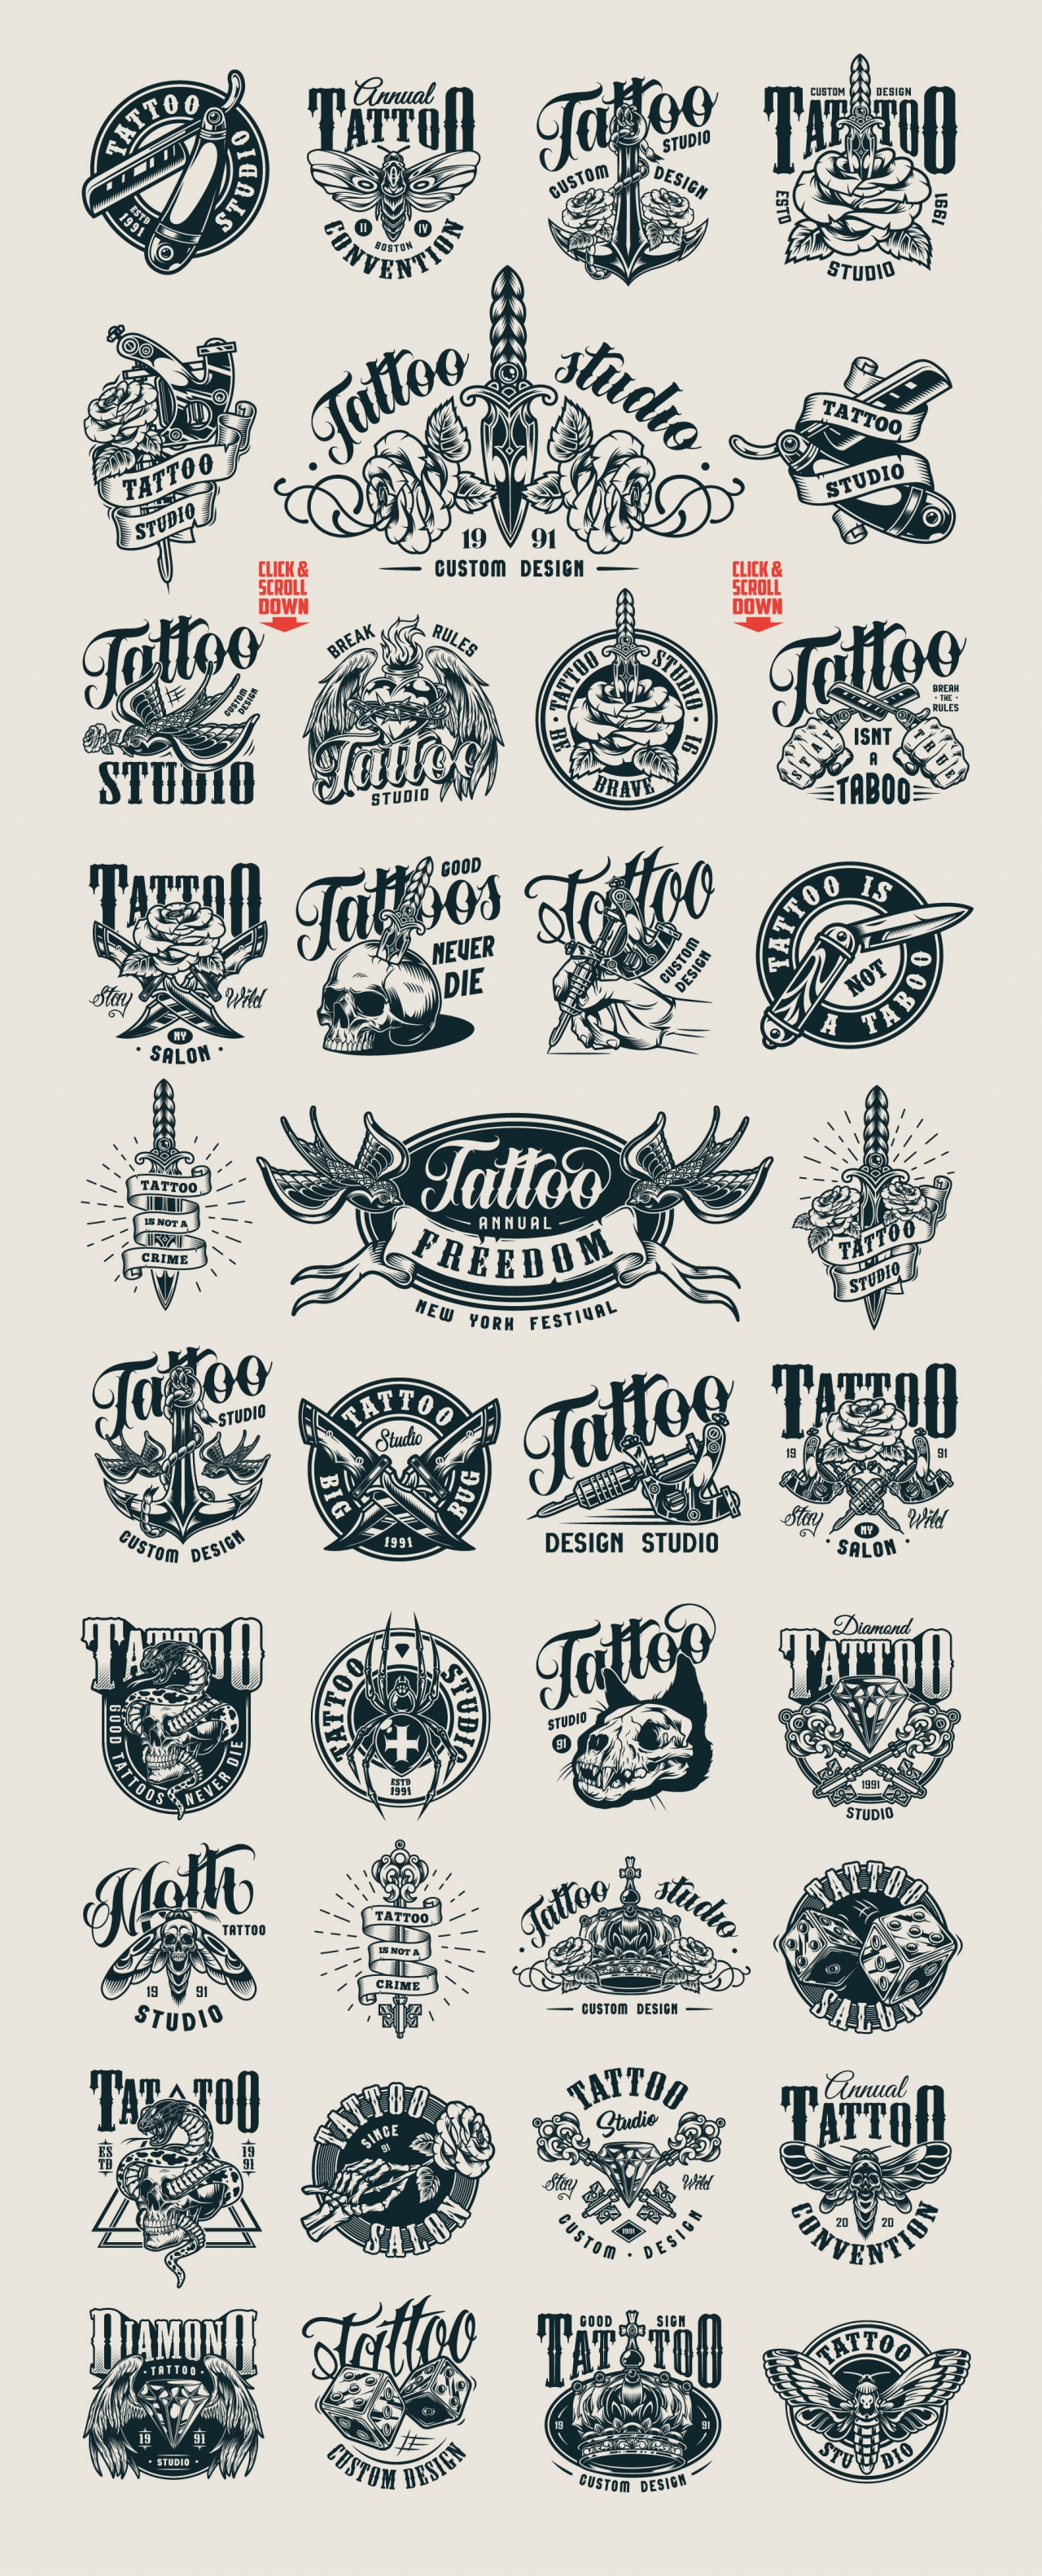 Monochrome style tattoo designs with vintage badges, prints, labels and emblems on light background